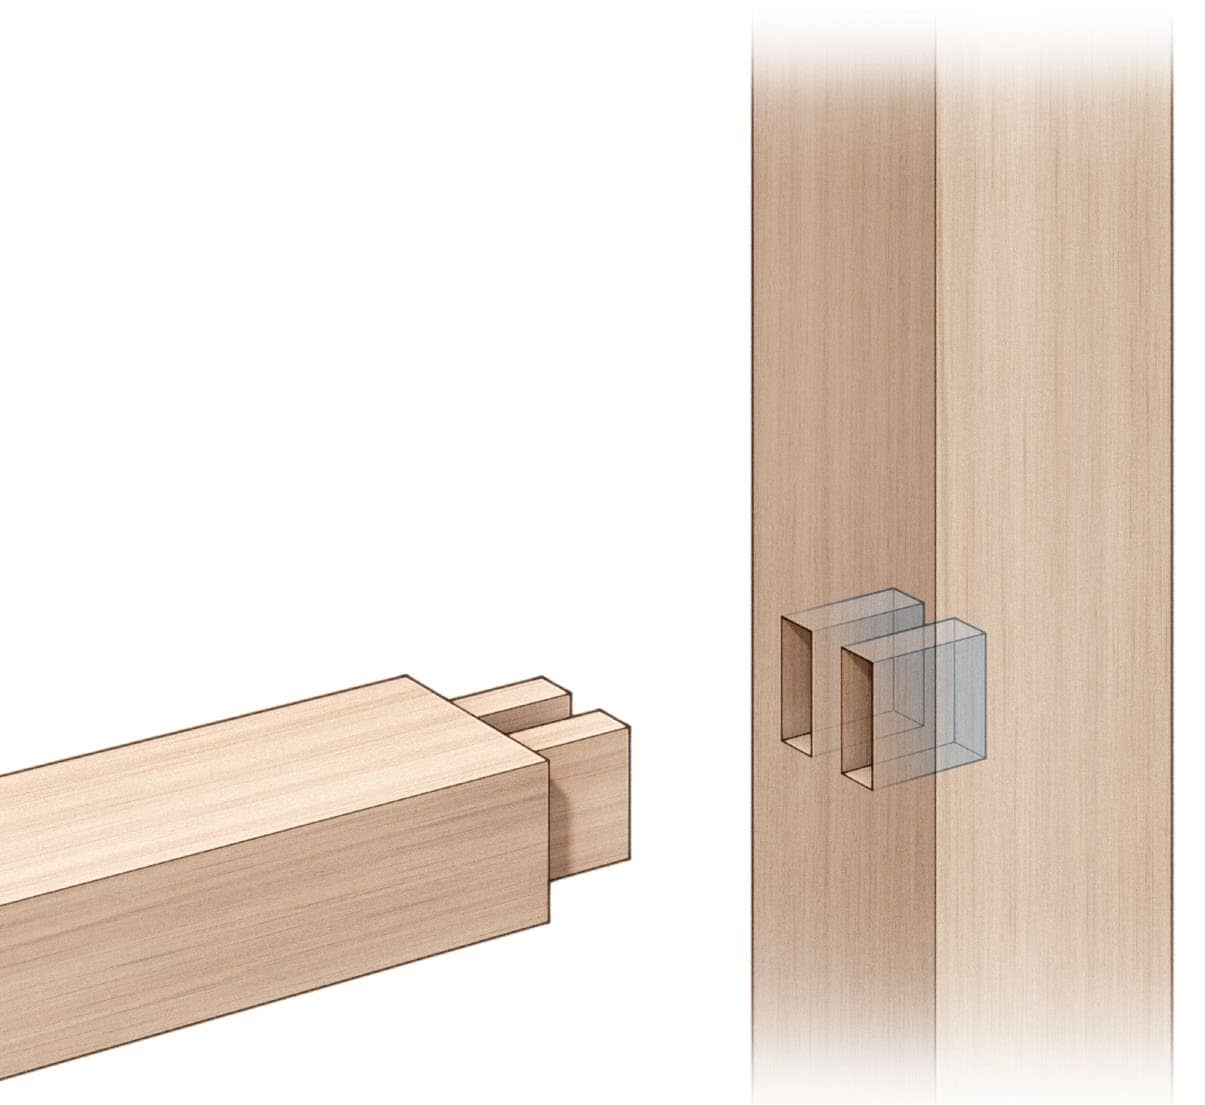 THE TWIN TENON JOINT